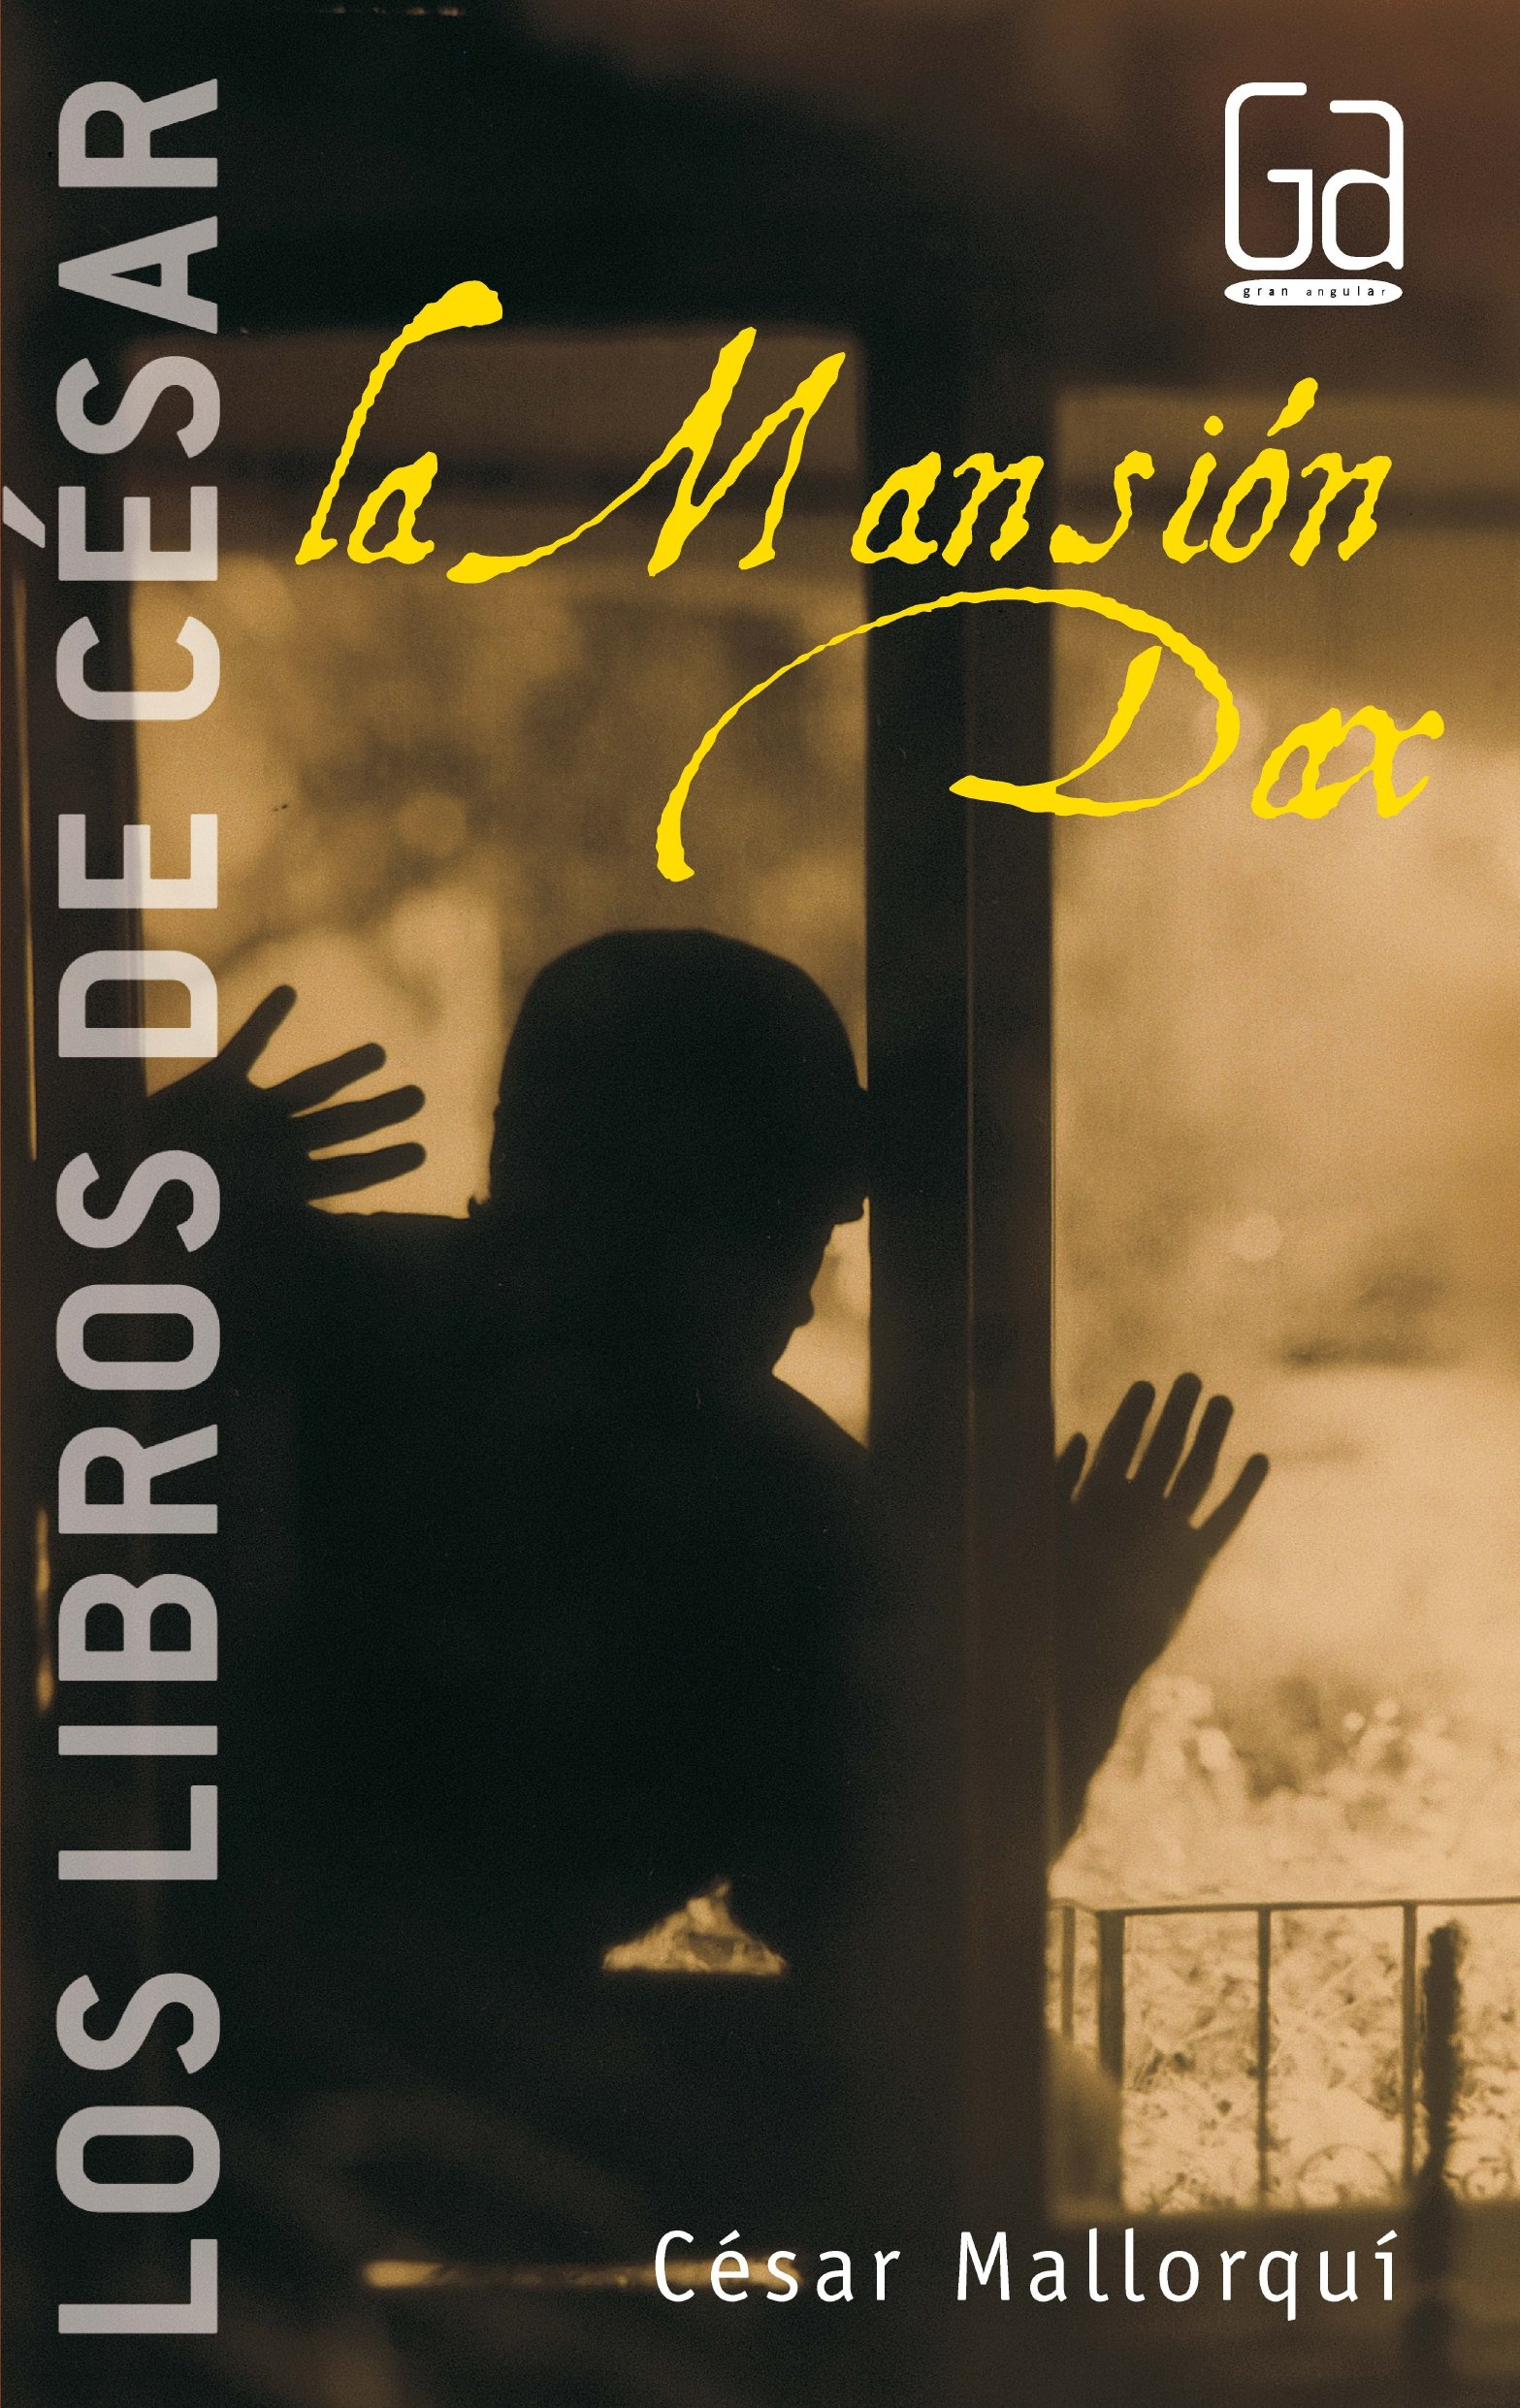 La mansion Dax / The Mansion Dax (Los Libros de Cesar / The Books of Cesar) (Spanish Edition) (Spanish) Paperback – June 30, 2005